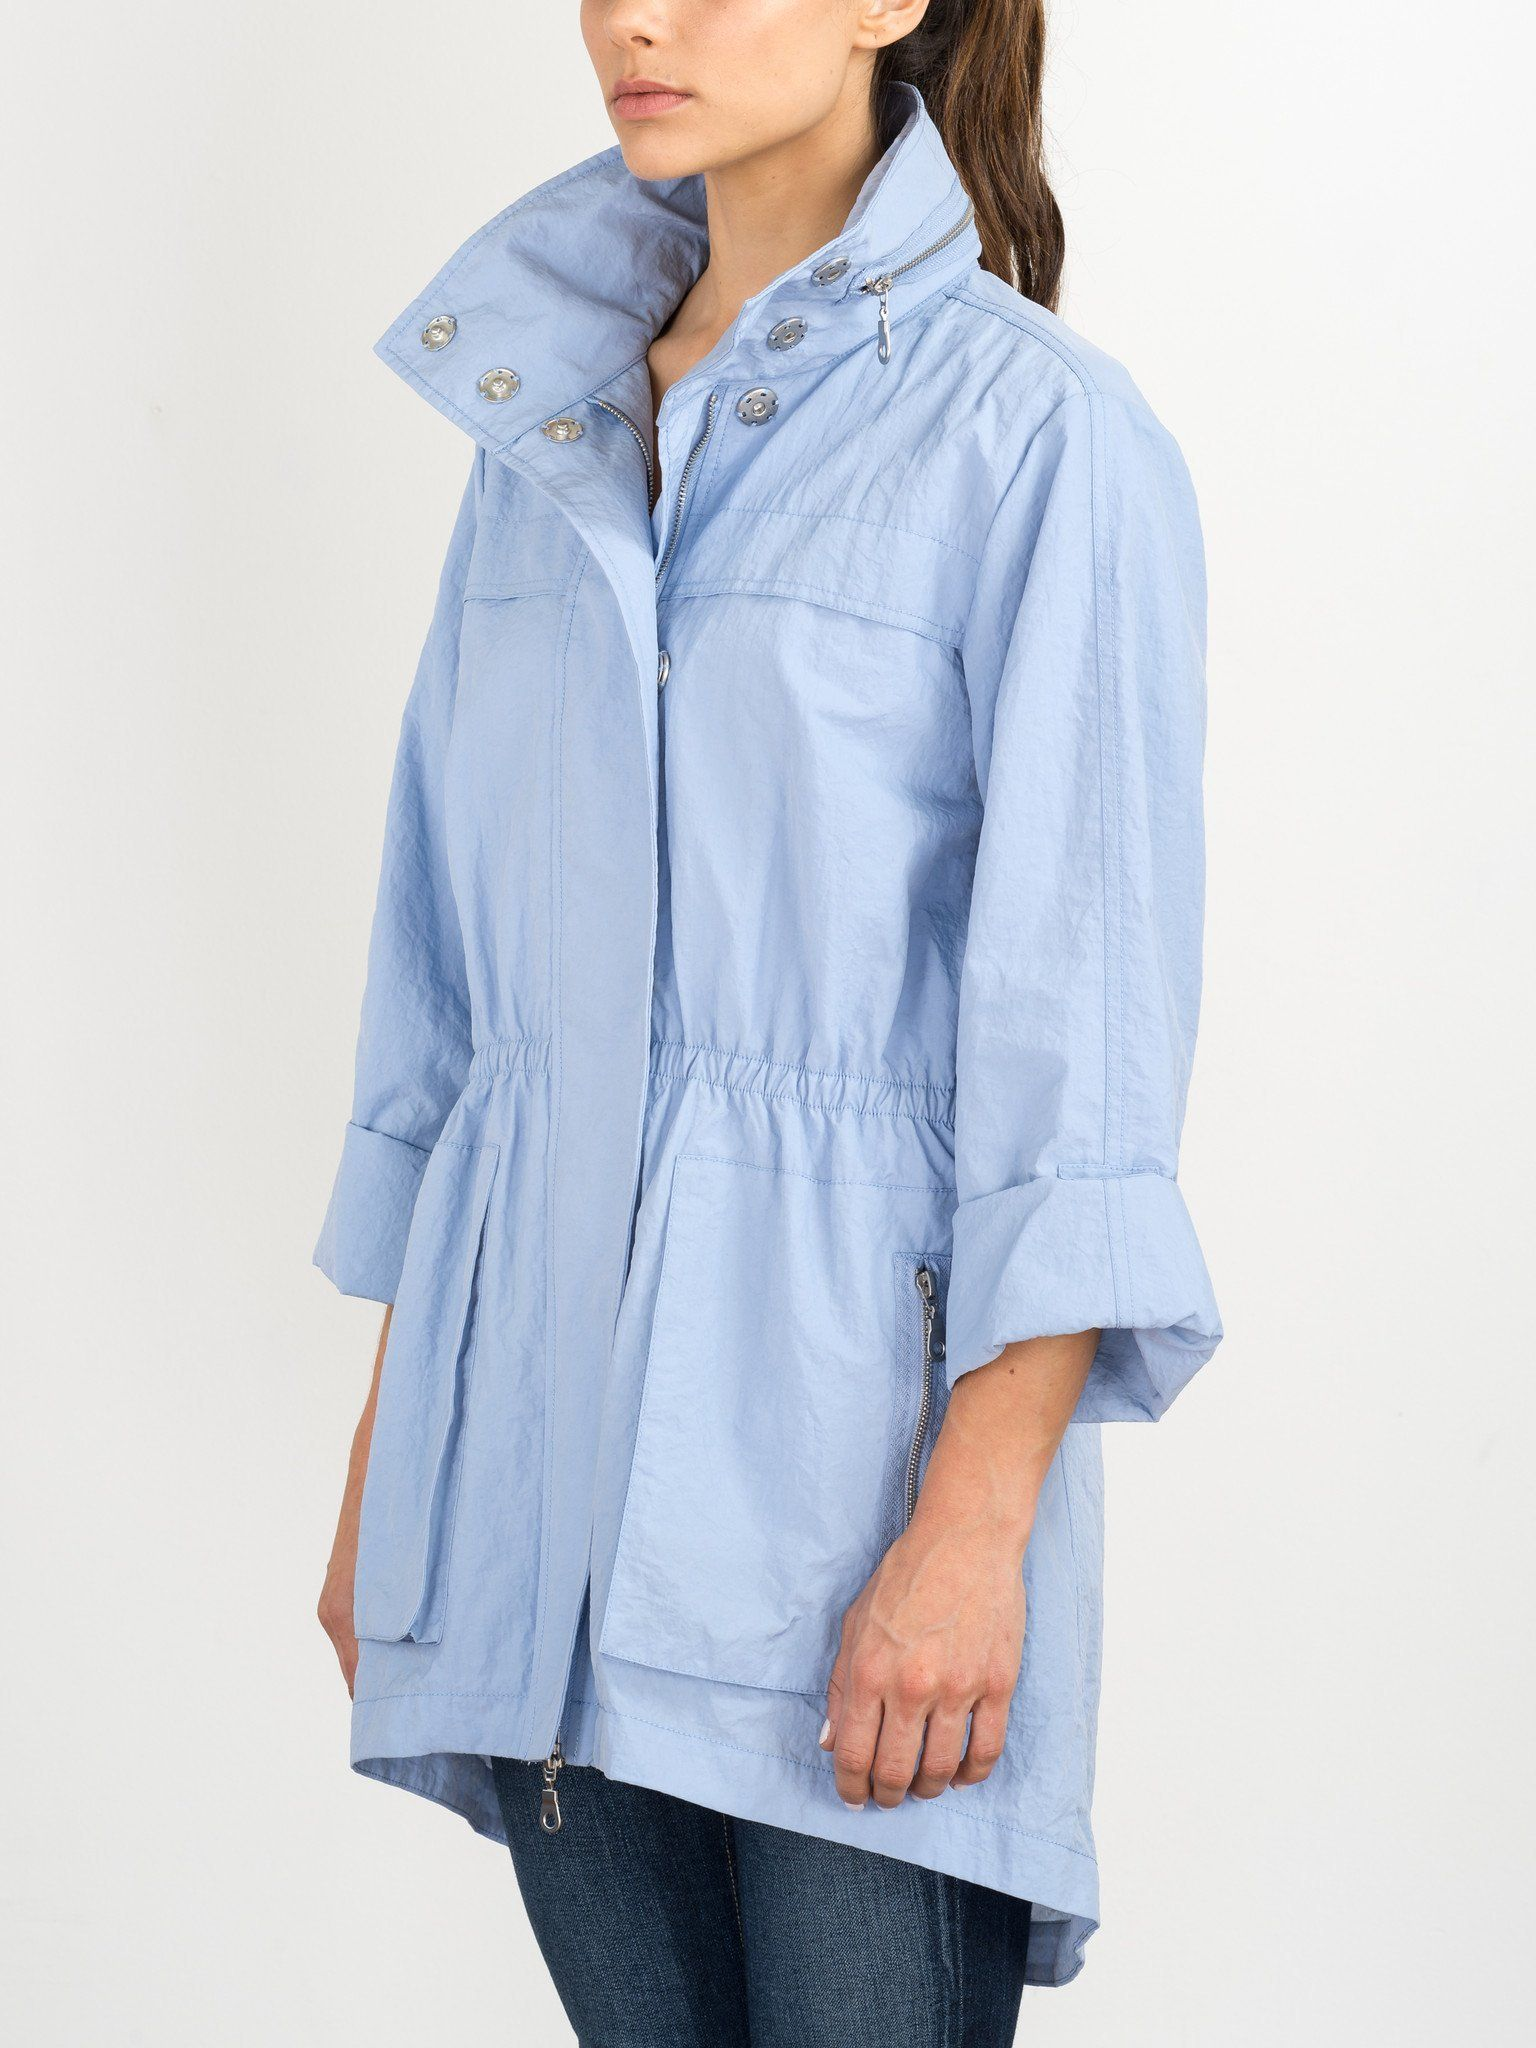 5493c7b3984f4 A MyAnorak best-seller, The Anorak jacket is an outerwear essential. The  Anorak is the perfect jacket to brave all elements - fog, rain, wind, ...